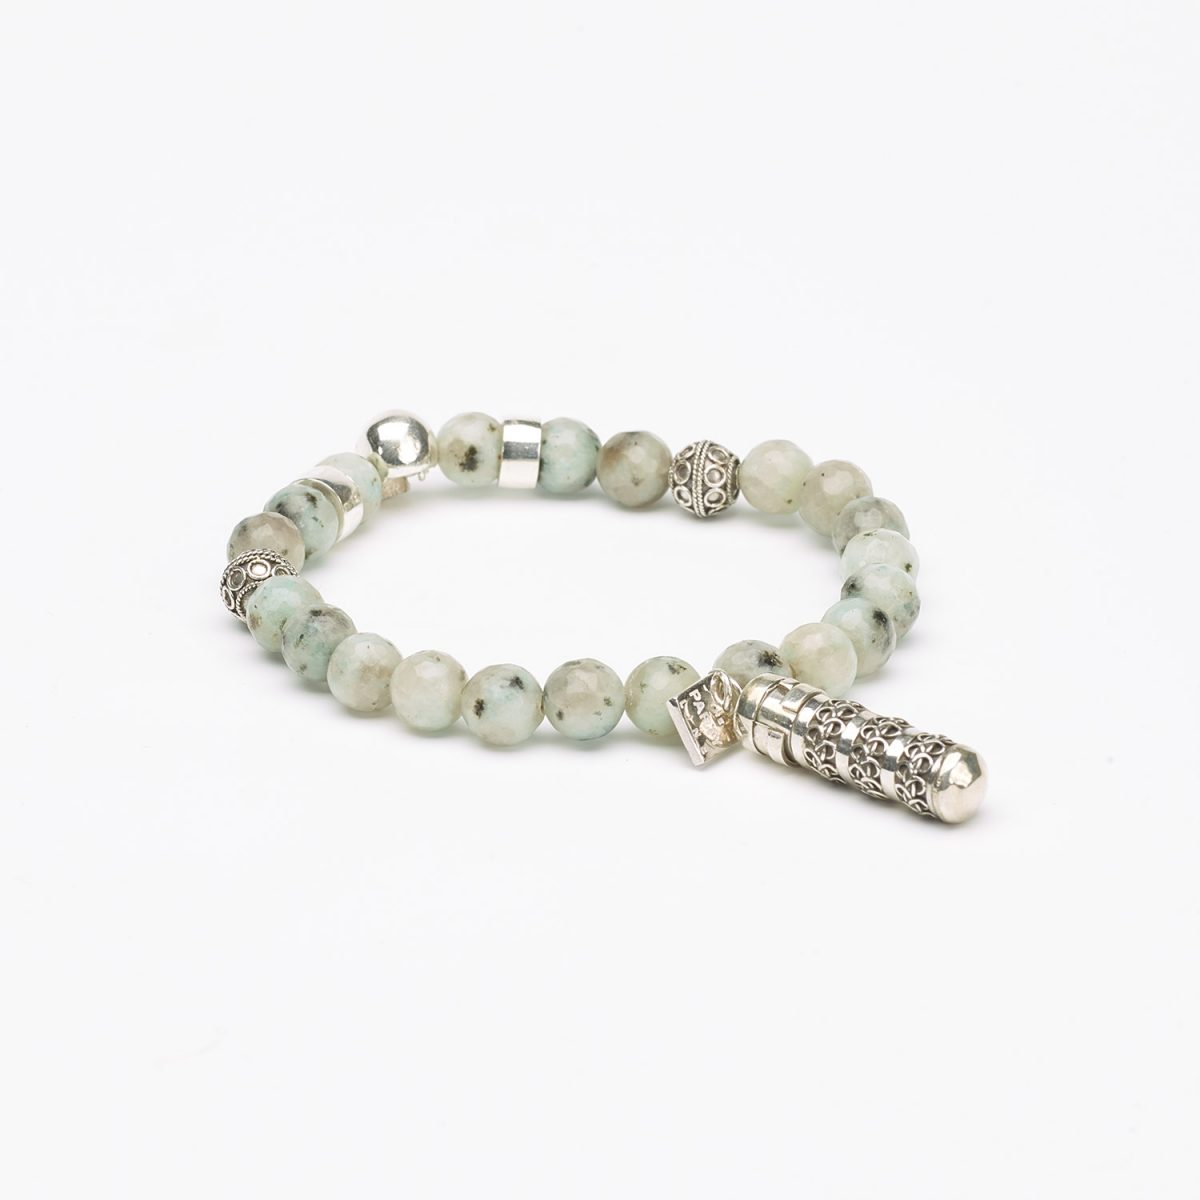 Buddhist Bracelet with  Amazonite and a Secret box, in silver